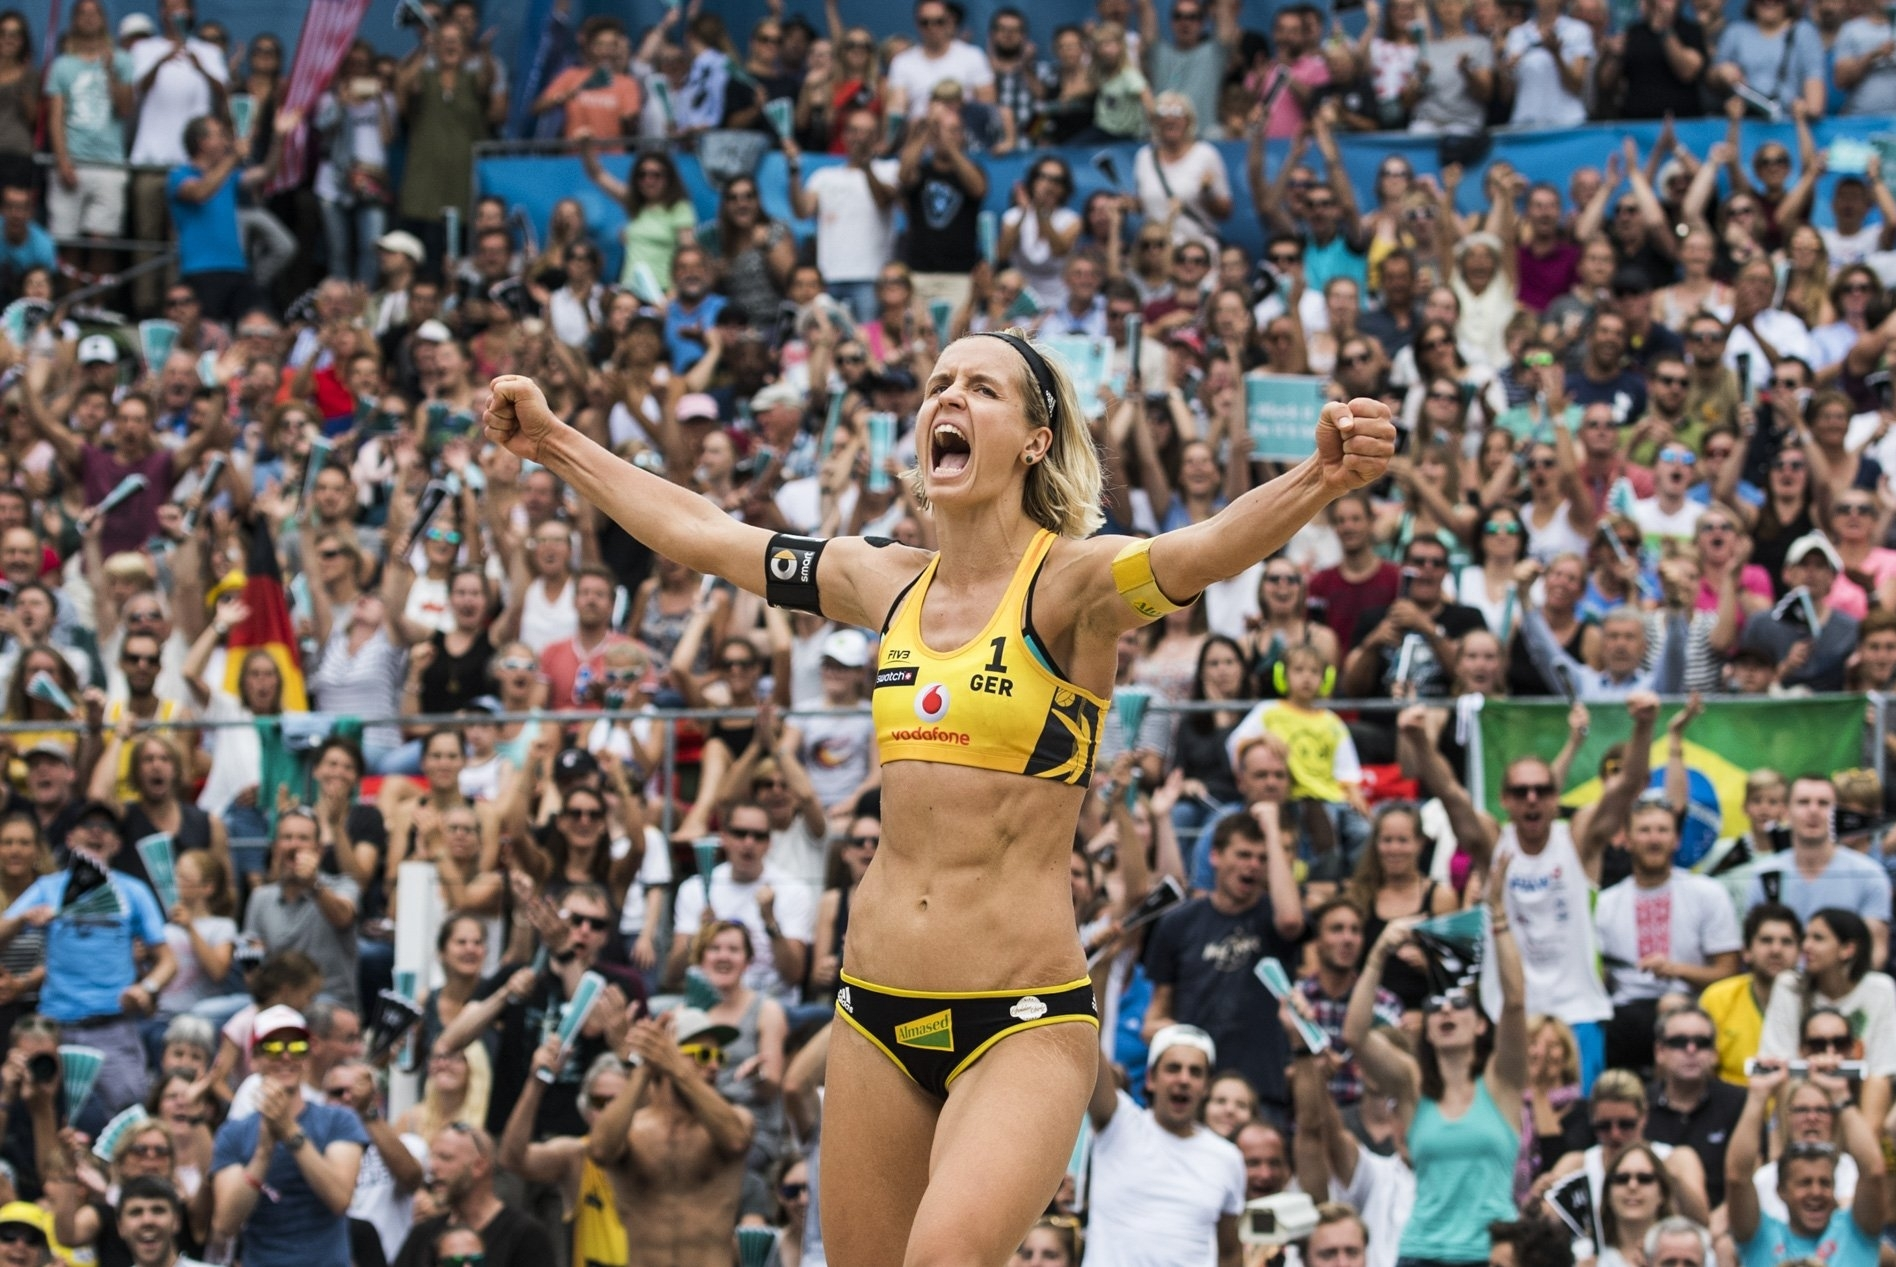 Laura Ludwig celebrates in Hamburg after she and Kira Walkenhorst won gold at the World Tour Finals